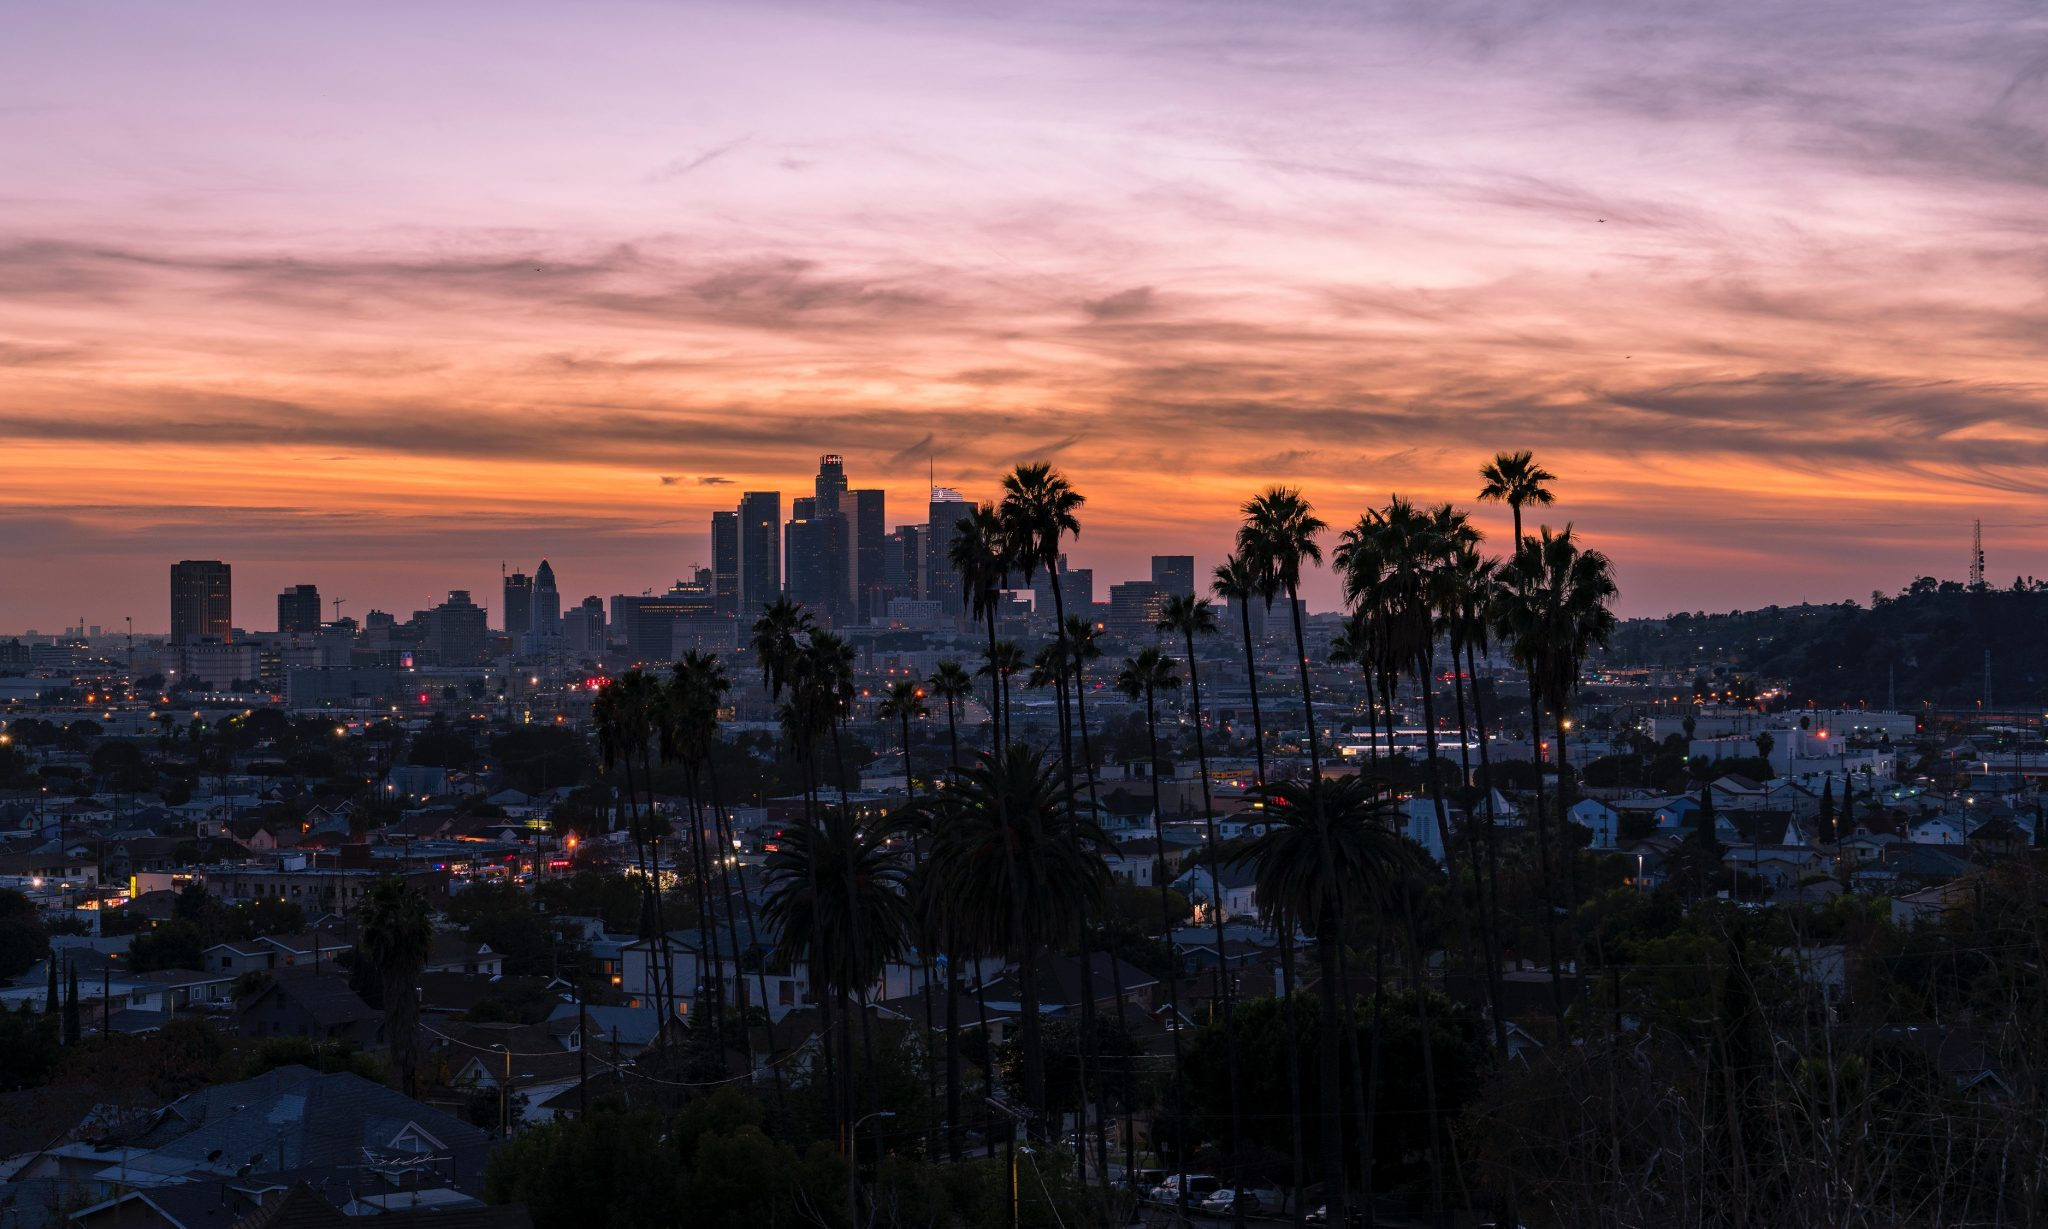 Los Angeles California at sunset